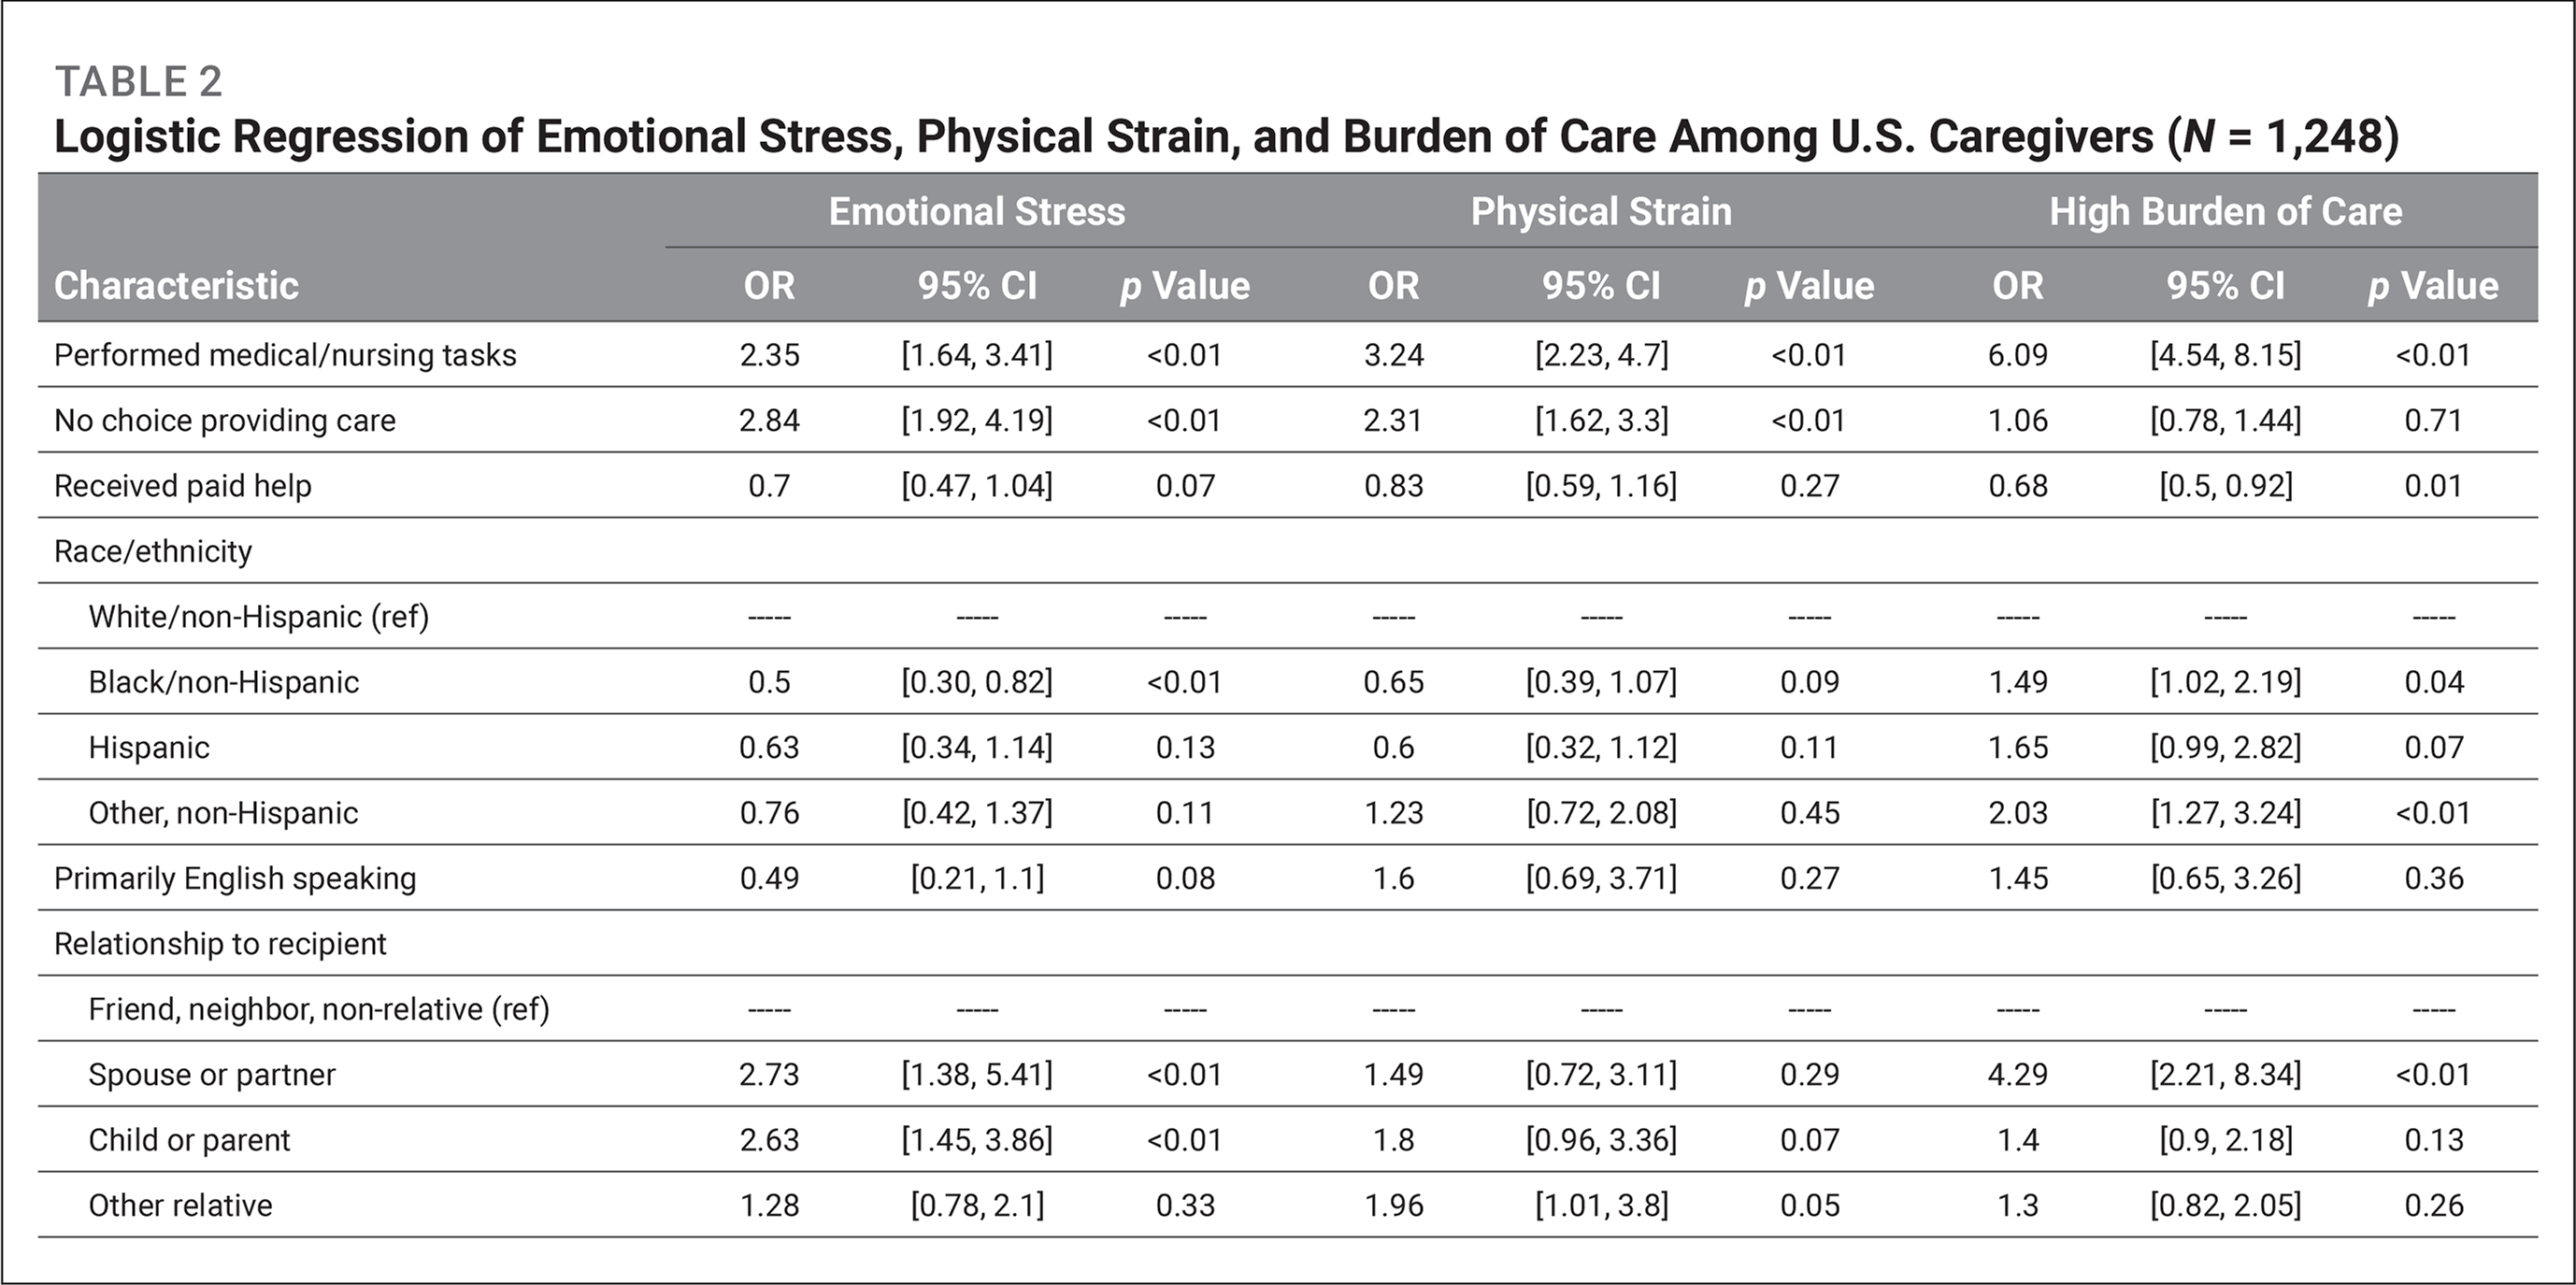 Logistic Regression of Emotional Stress, Physical Strain, and Burden of Care Among U.S. Caregivers (N = 1,248)